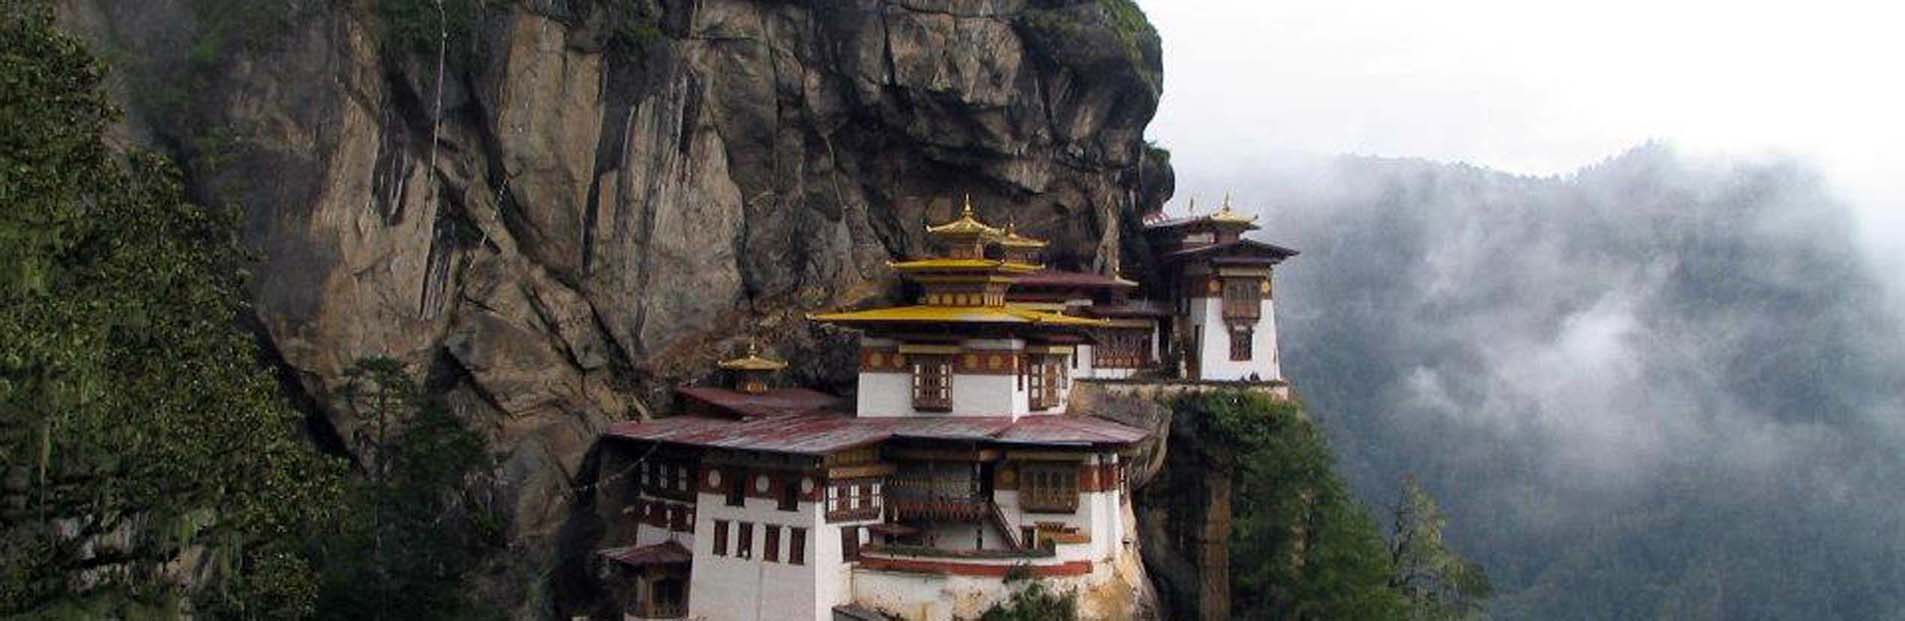 Bhutan The tiget's nest.jpg